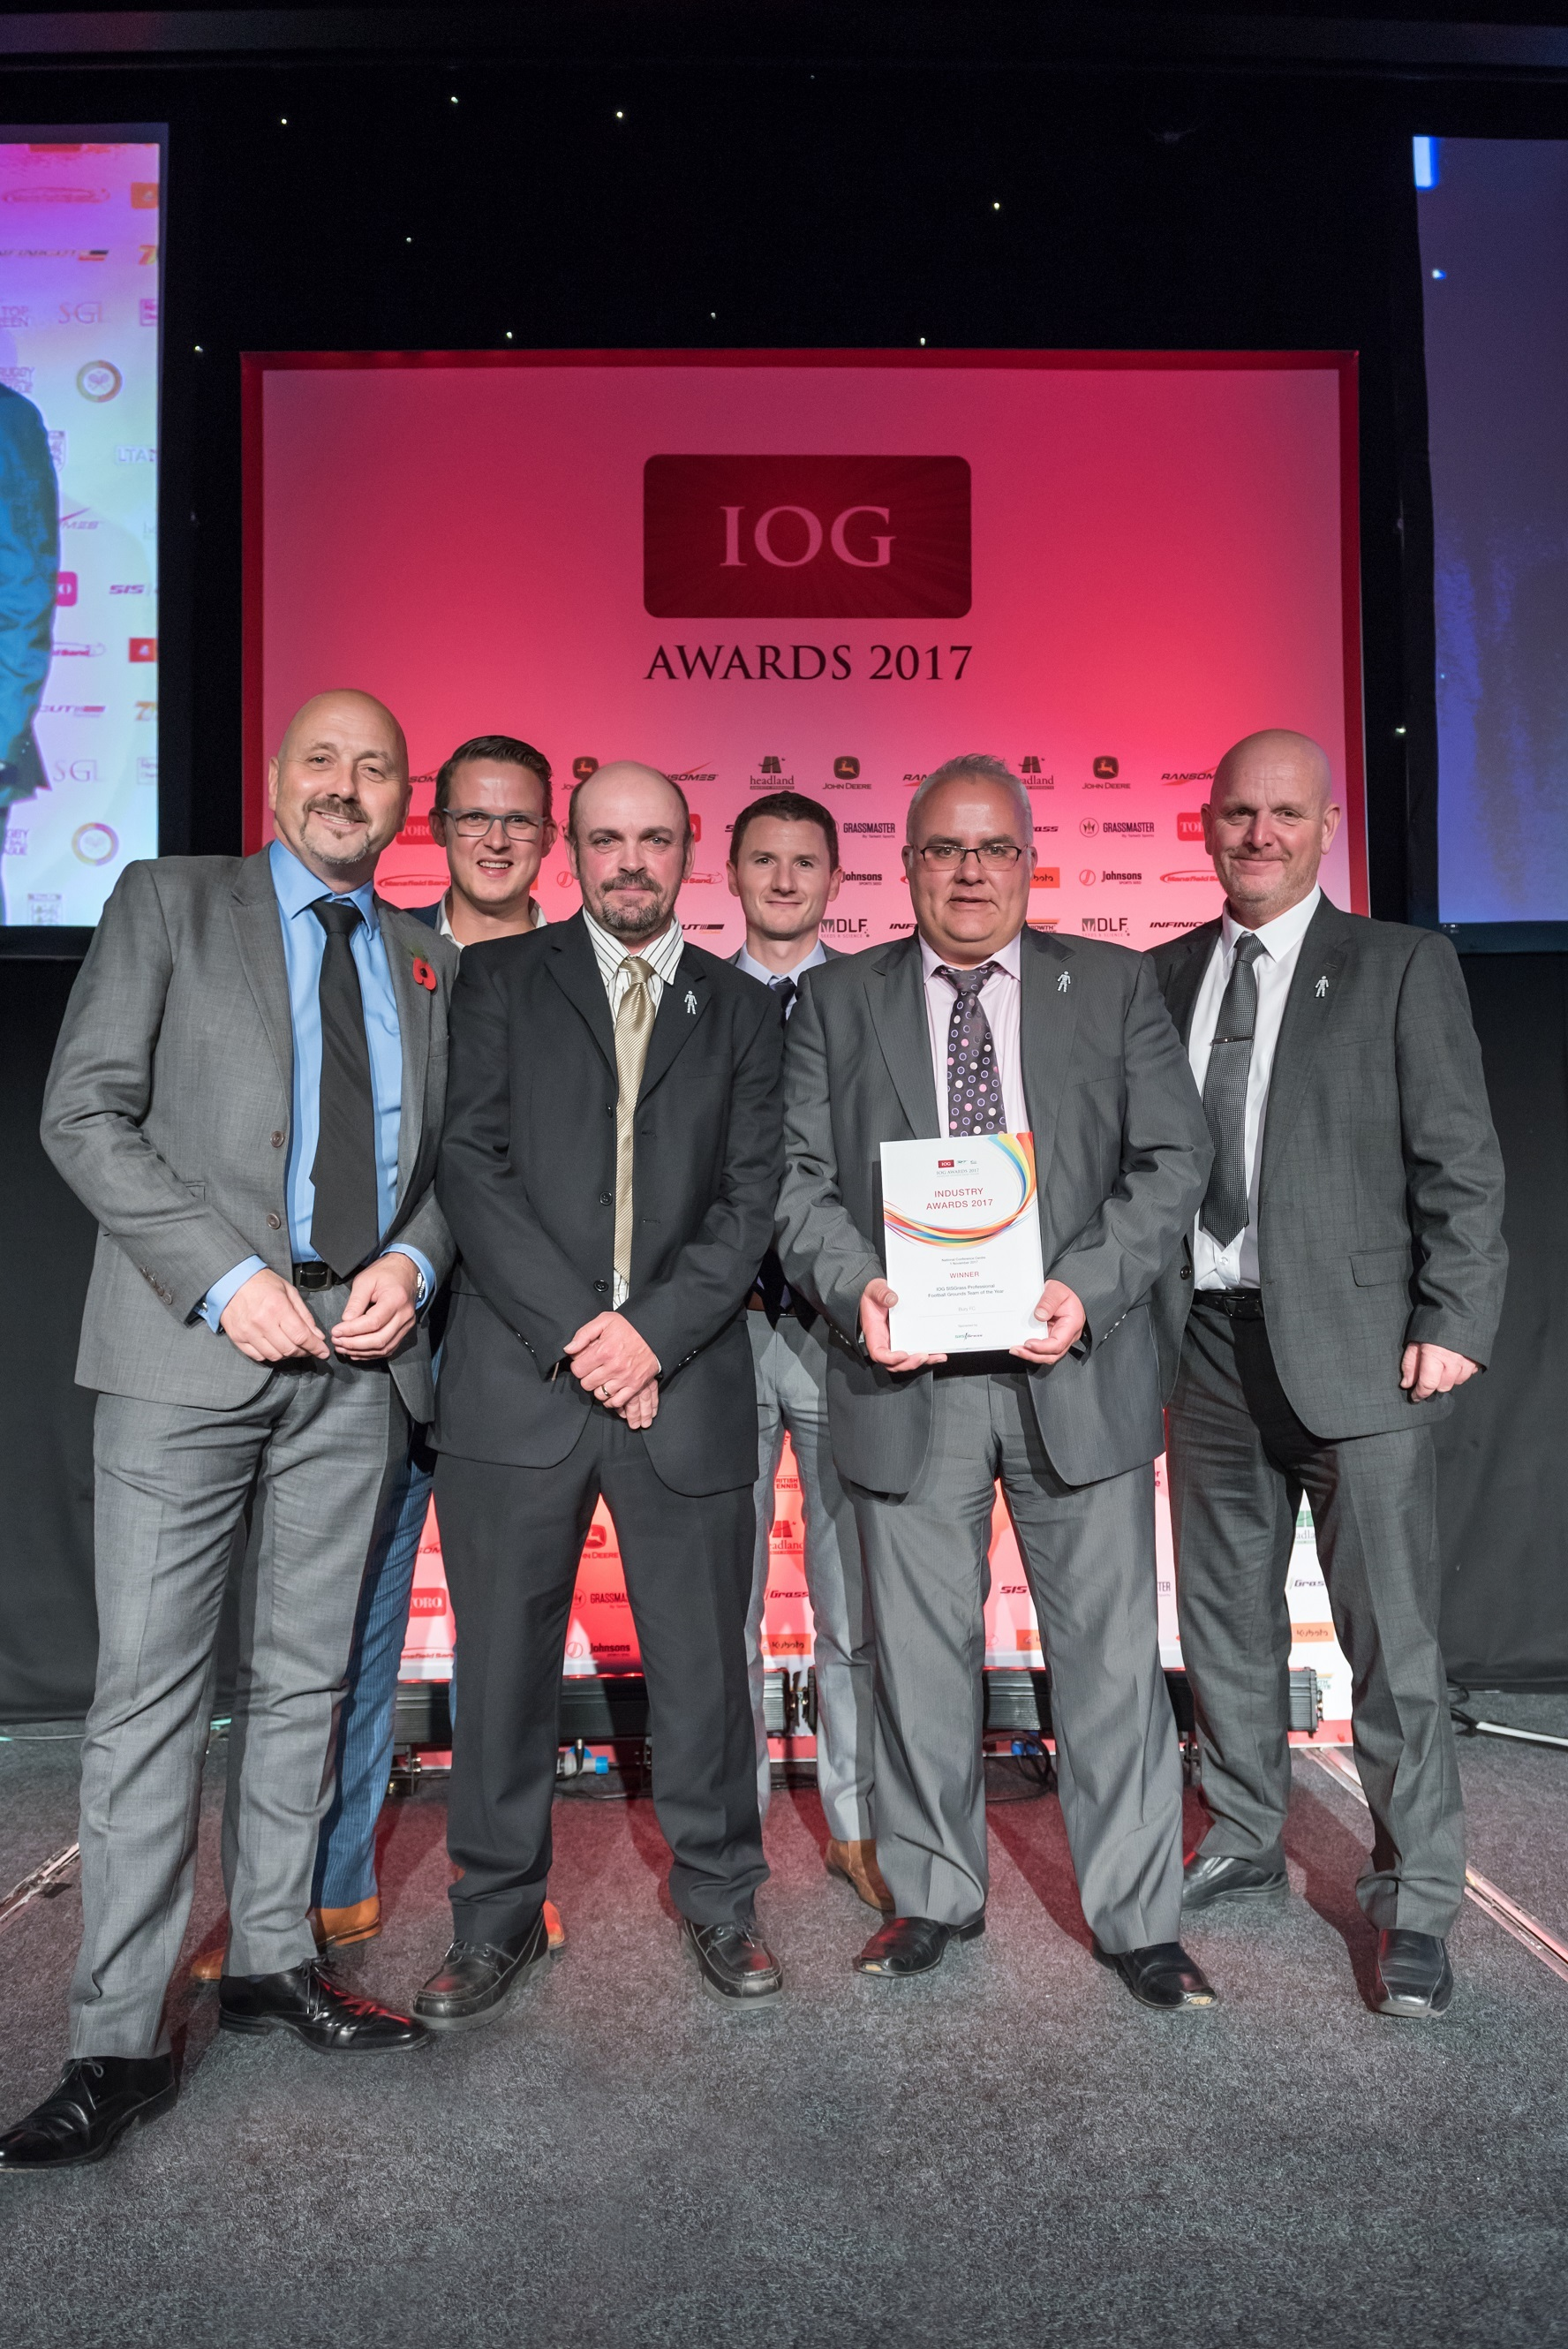 BBC presenter Mark Clemmit, left, hands over the award to Bury's groundstaff